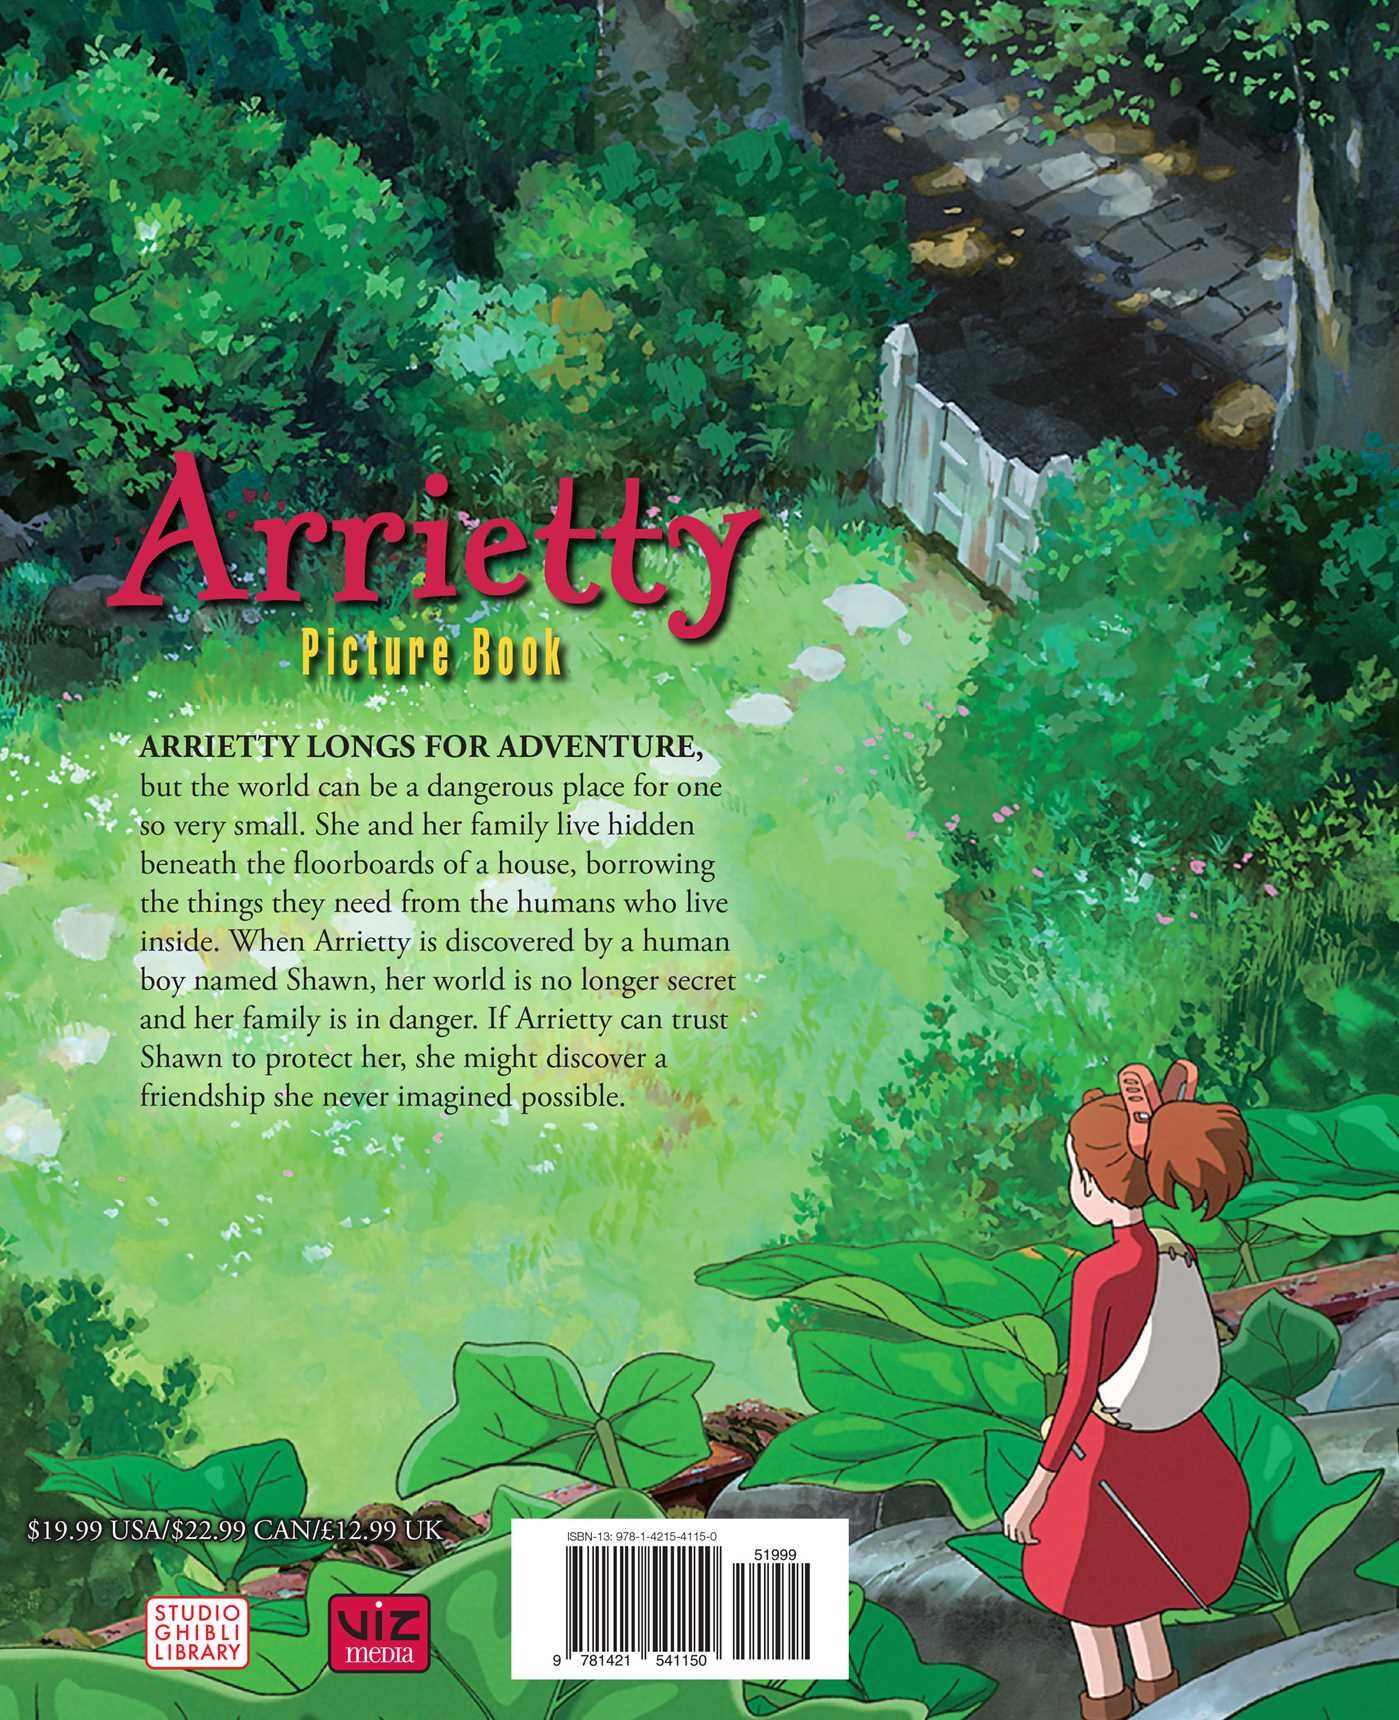 The secret world of arrietty picture book 9781421541150 hr back